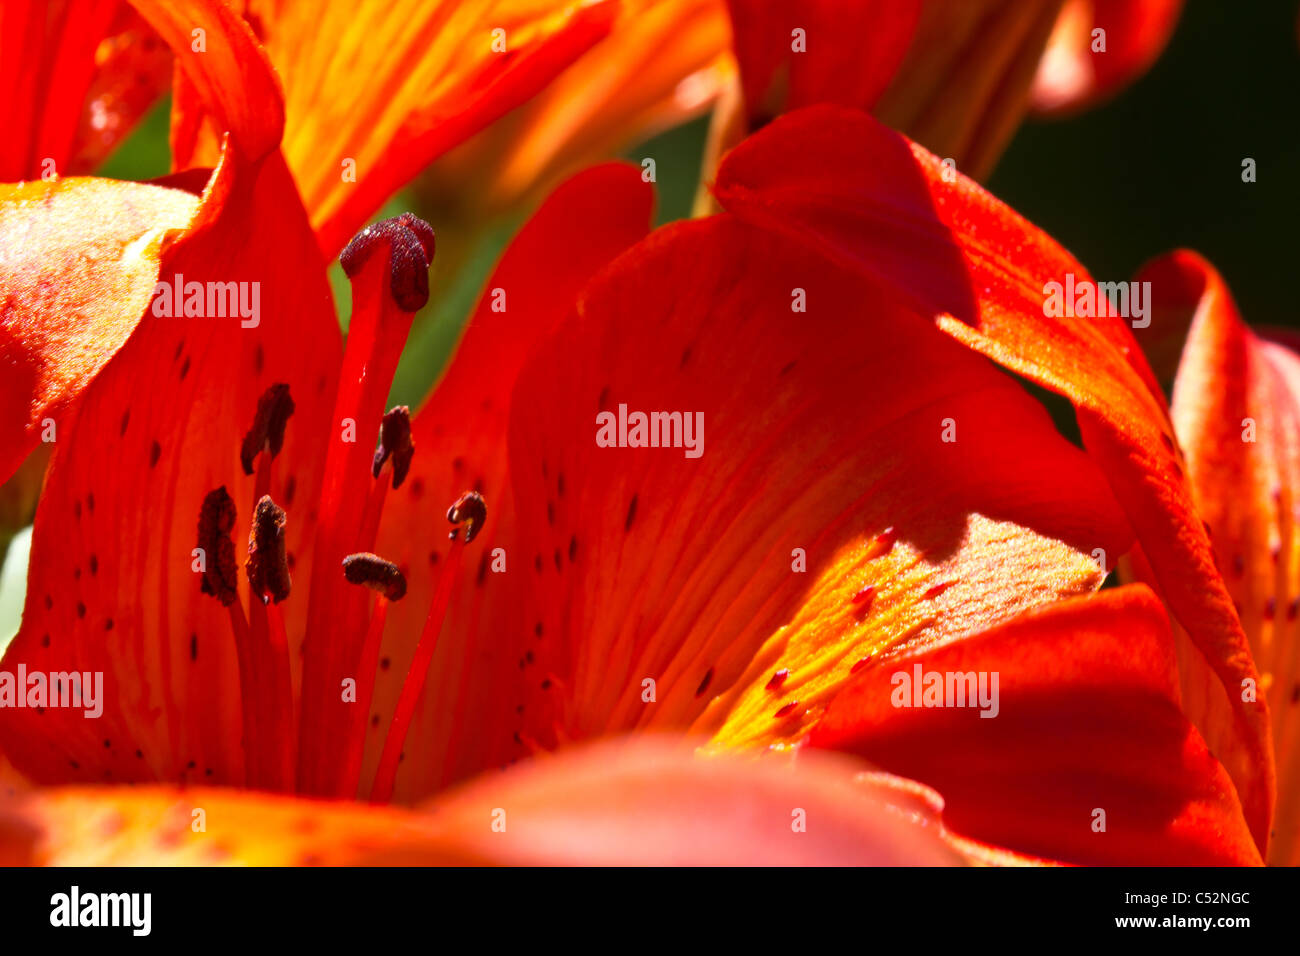 Closeup on a red flower's petals, pistil and stem Stock Photo